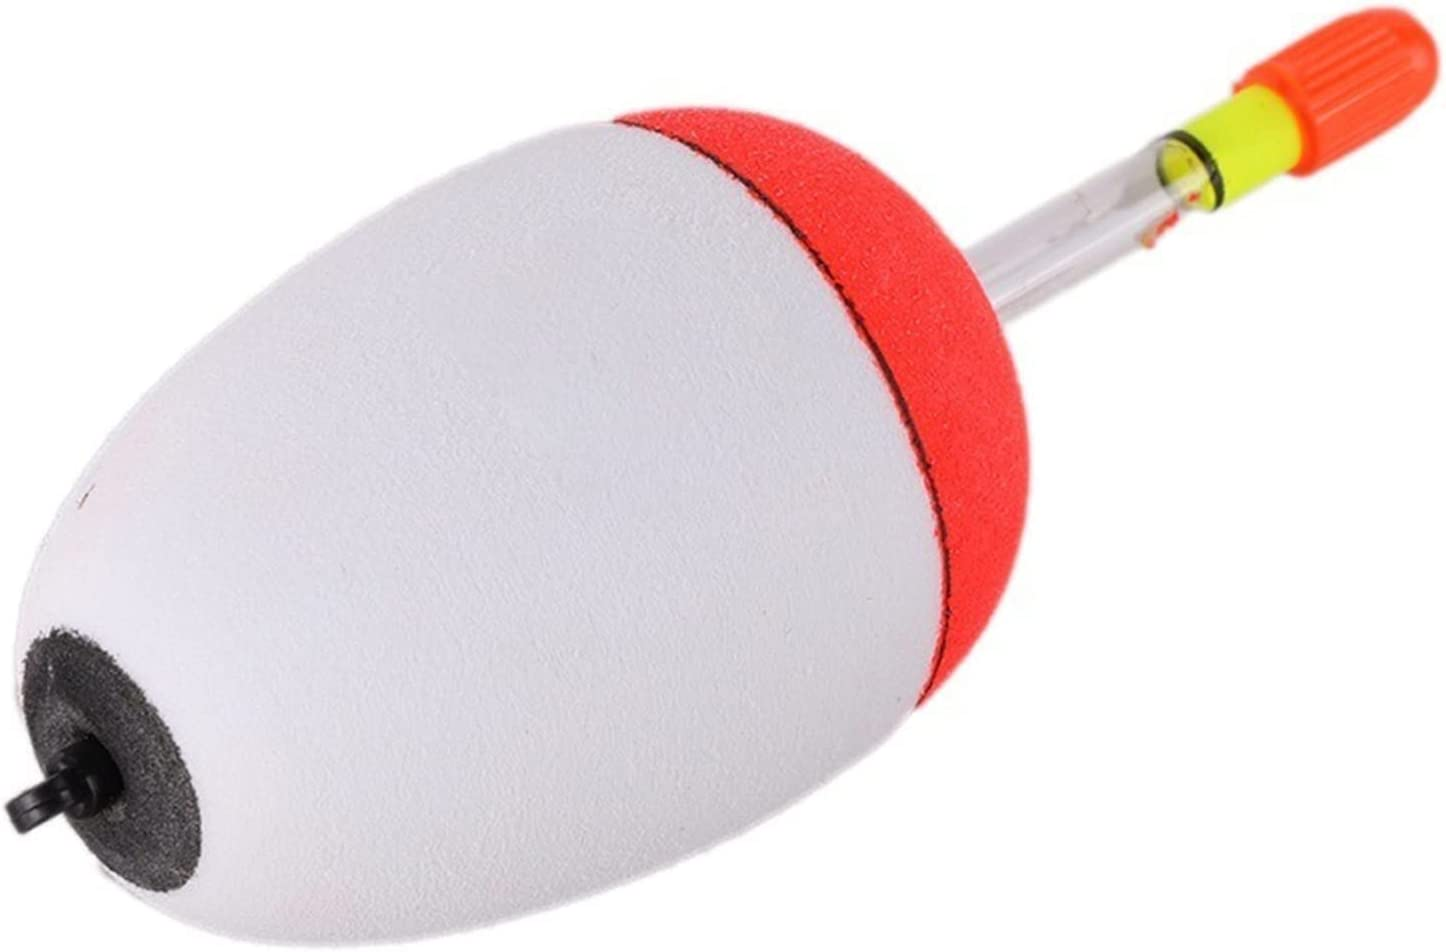 Marker Buoy 10pcs Set EVA Sea Fishing Inserted Can Be Lum Austin Mall Floats Outlet SALE